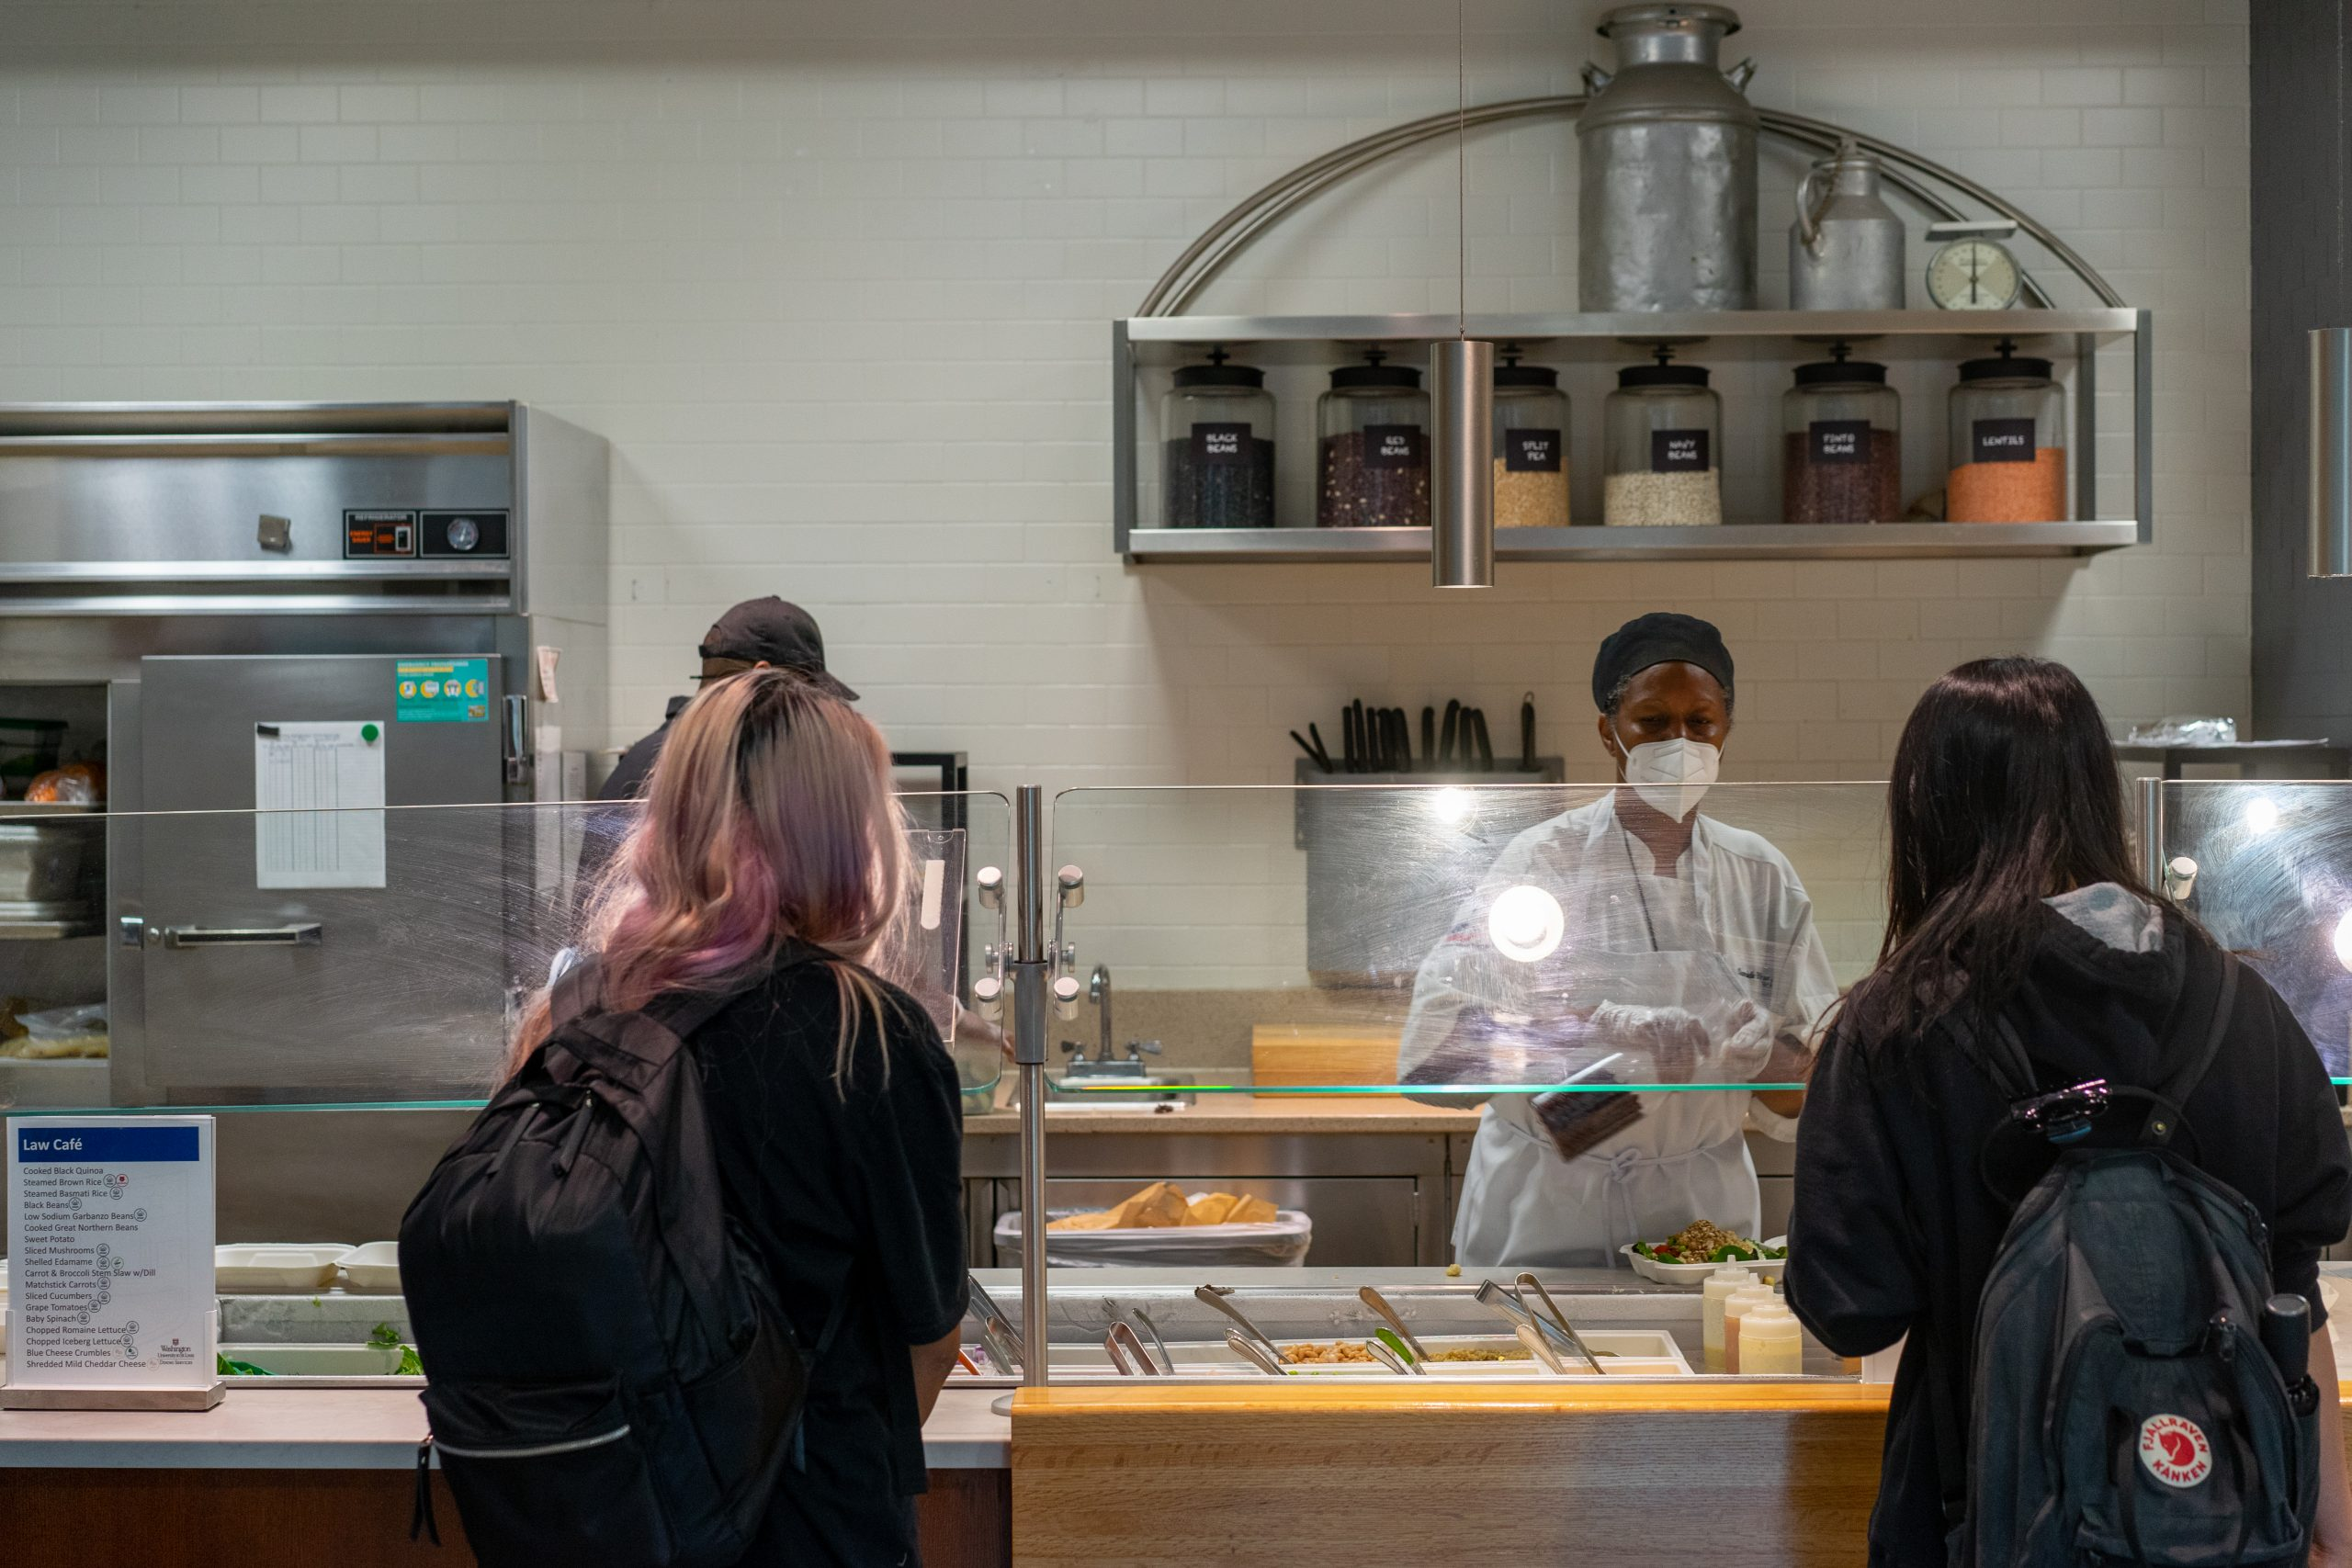 Two students carrying backpacks stand across a counter from a chef.